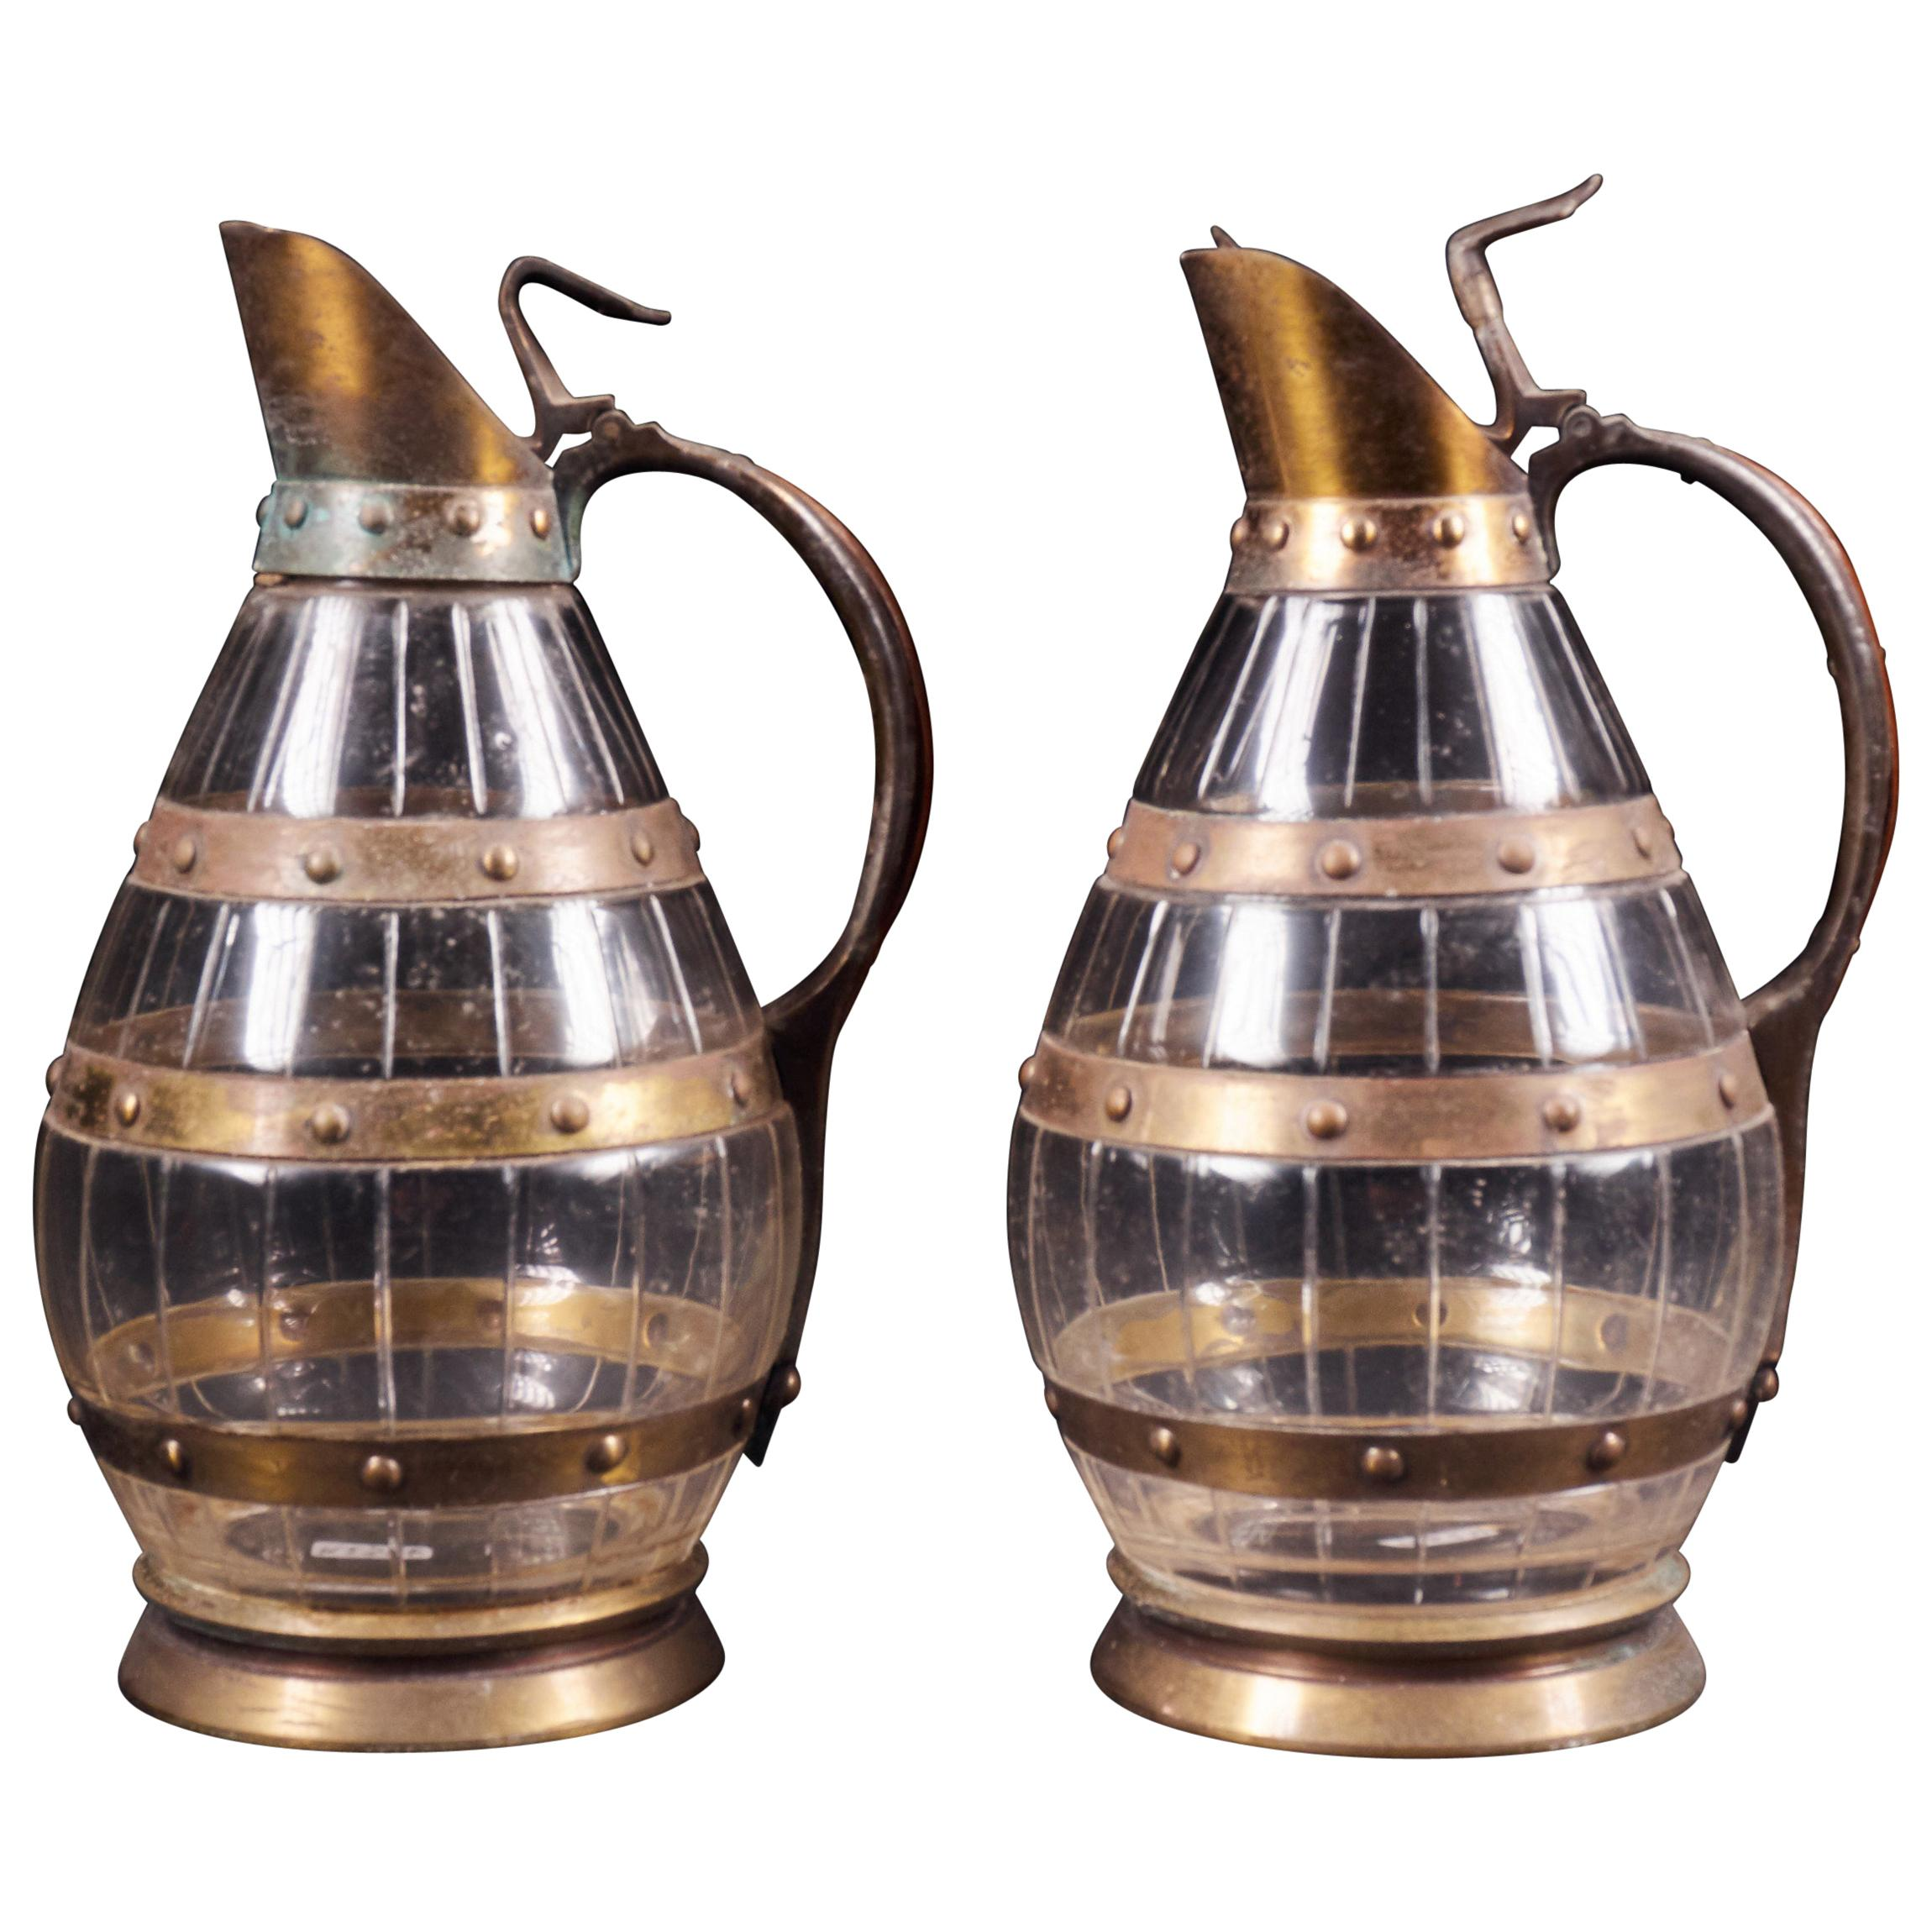 Set of 2 Rare Copper Alloy and Glass Carafes